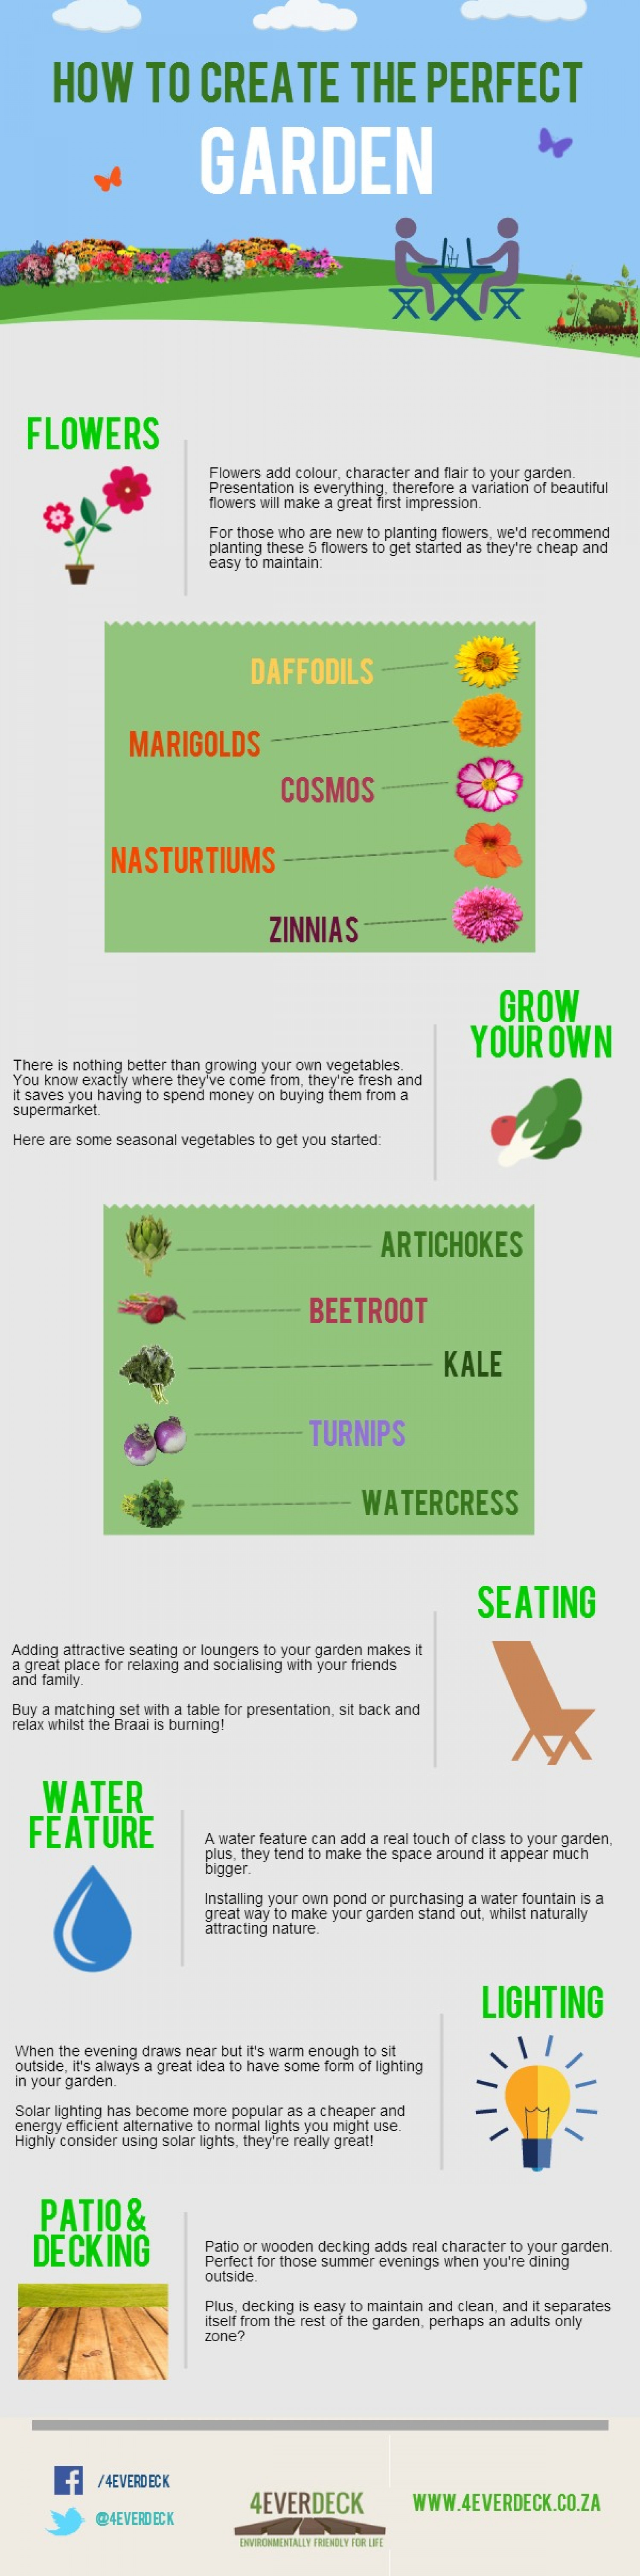 How To Create The Perfect Garden Infographic